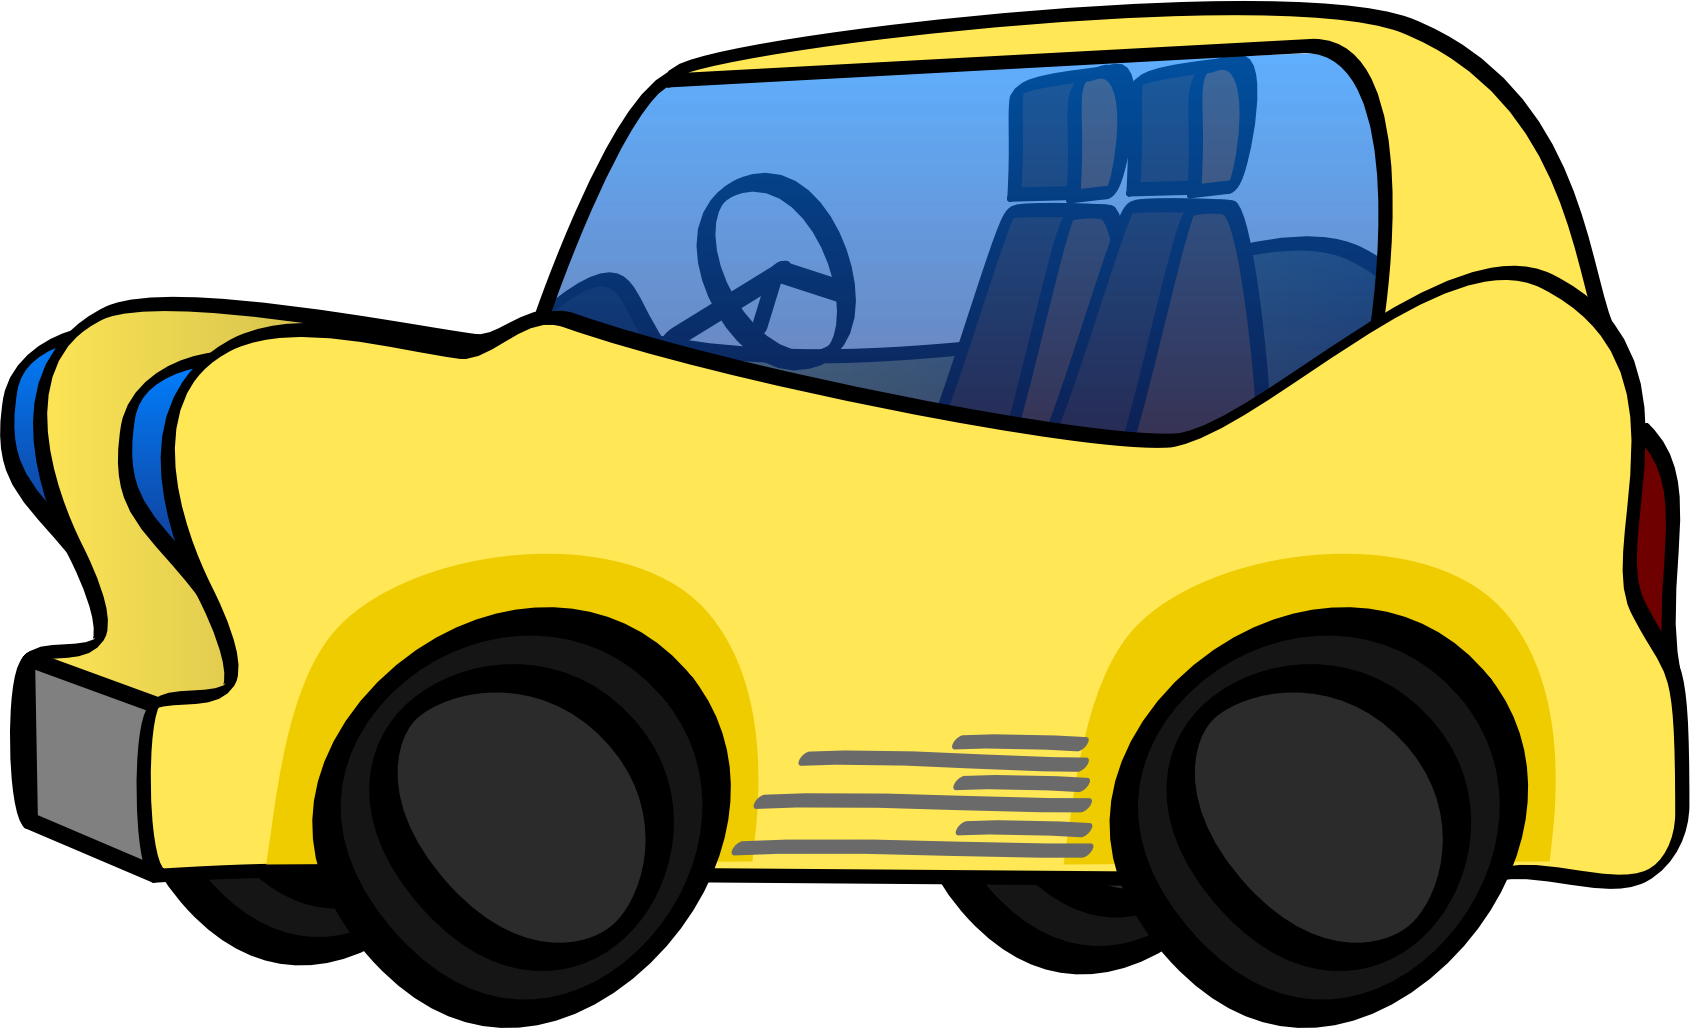 1690x1028 Car Clipart, Suggestions For Car Clipart, Download Car Clipart